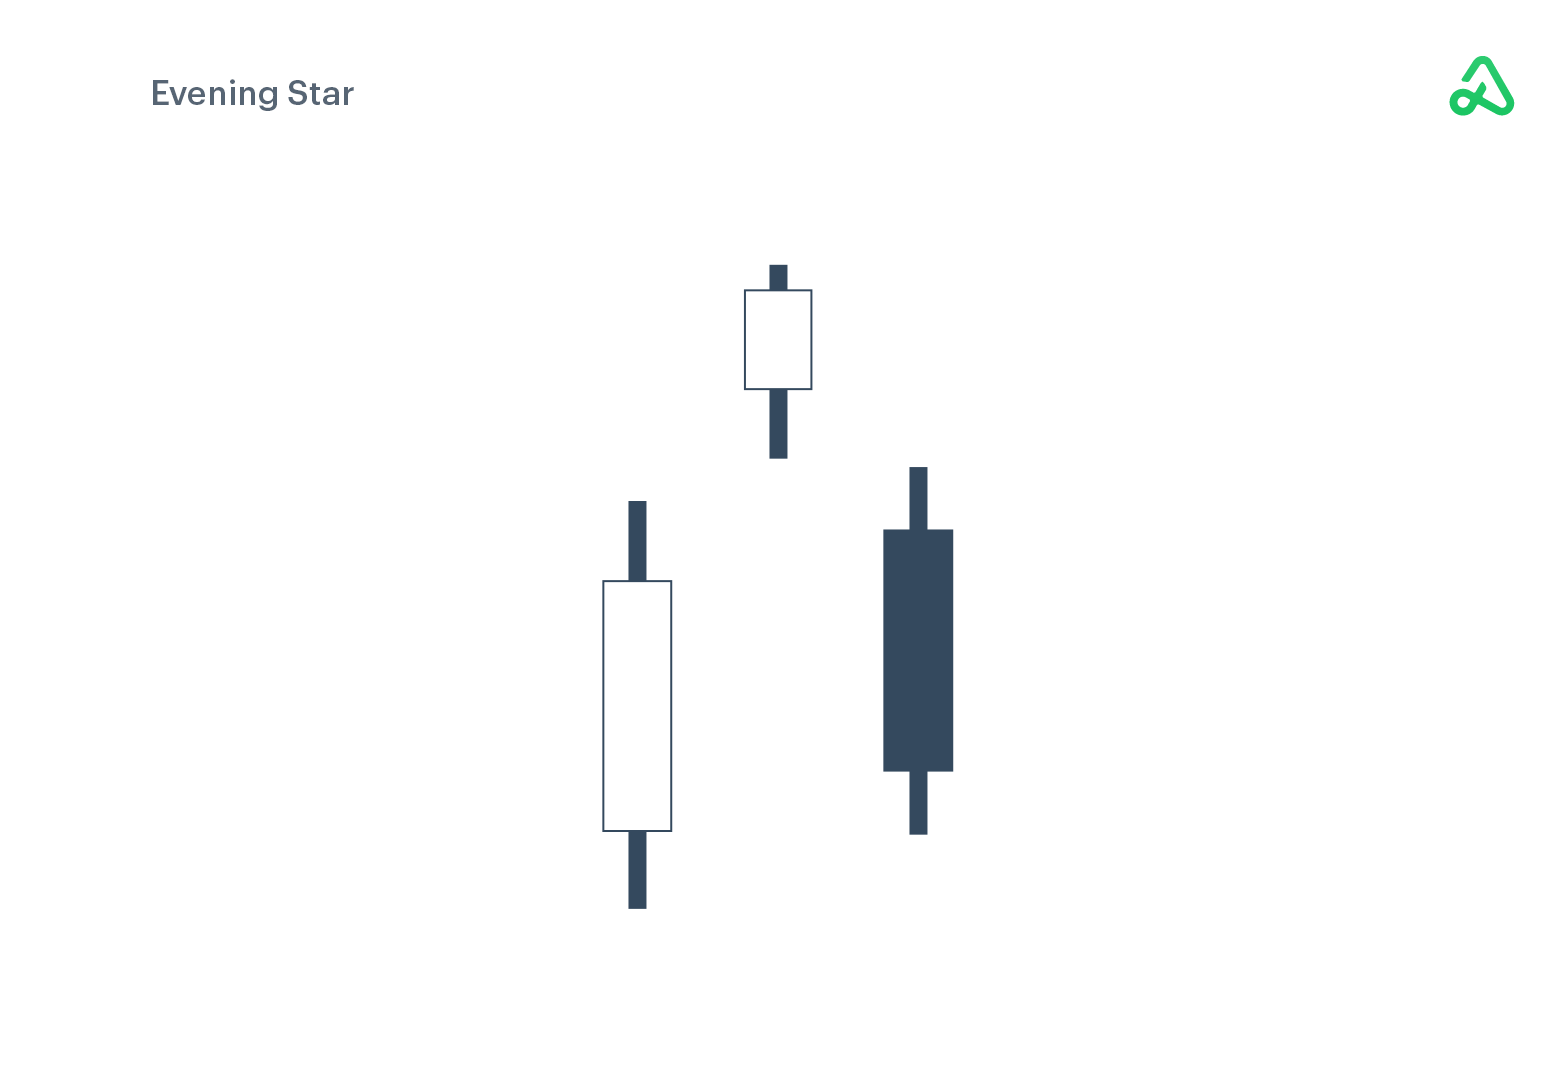 Evening Star example image